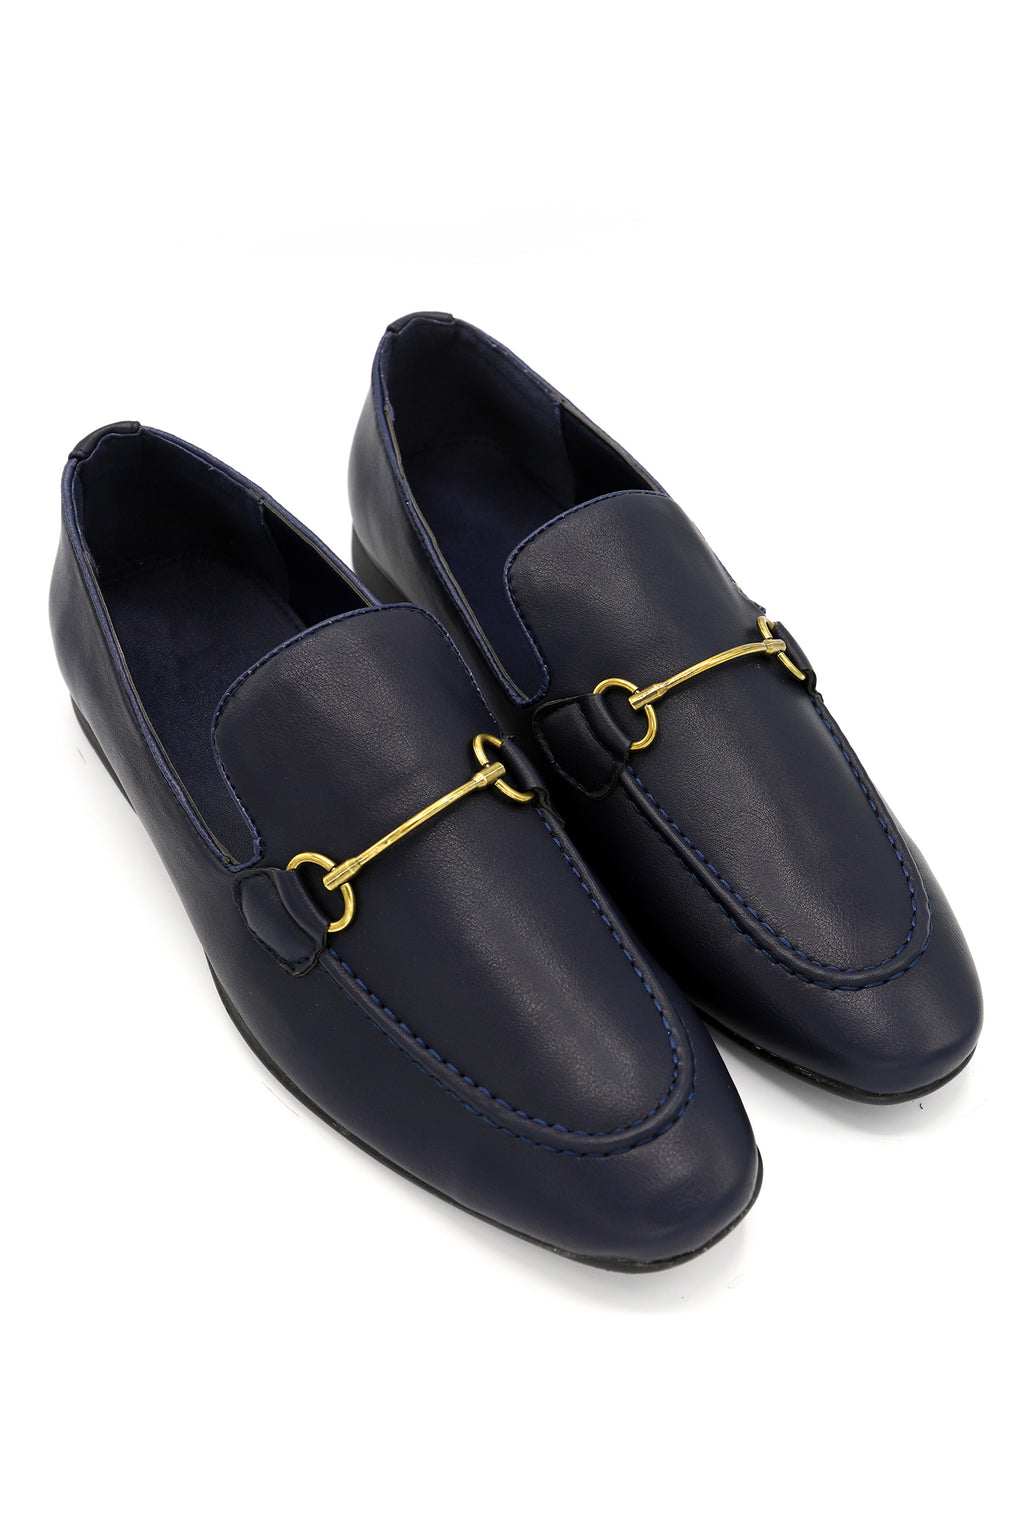 BUCKLED LOAFERS -NAVY